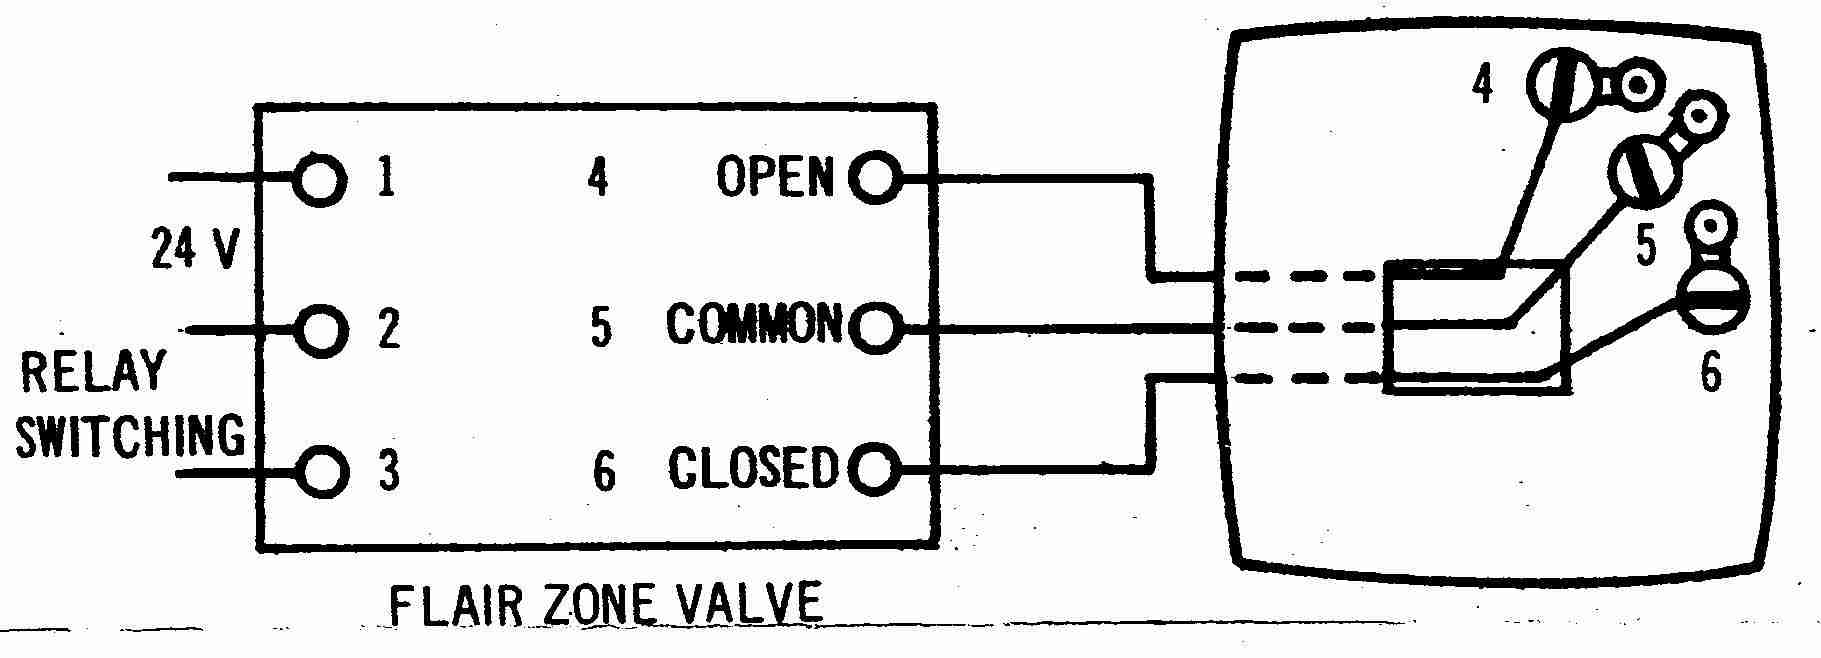 Flair3w_001_DJFc2 room thermostat wiring diagrams for hvac systems honeywell relay wiring diagram at edmiracle.co